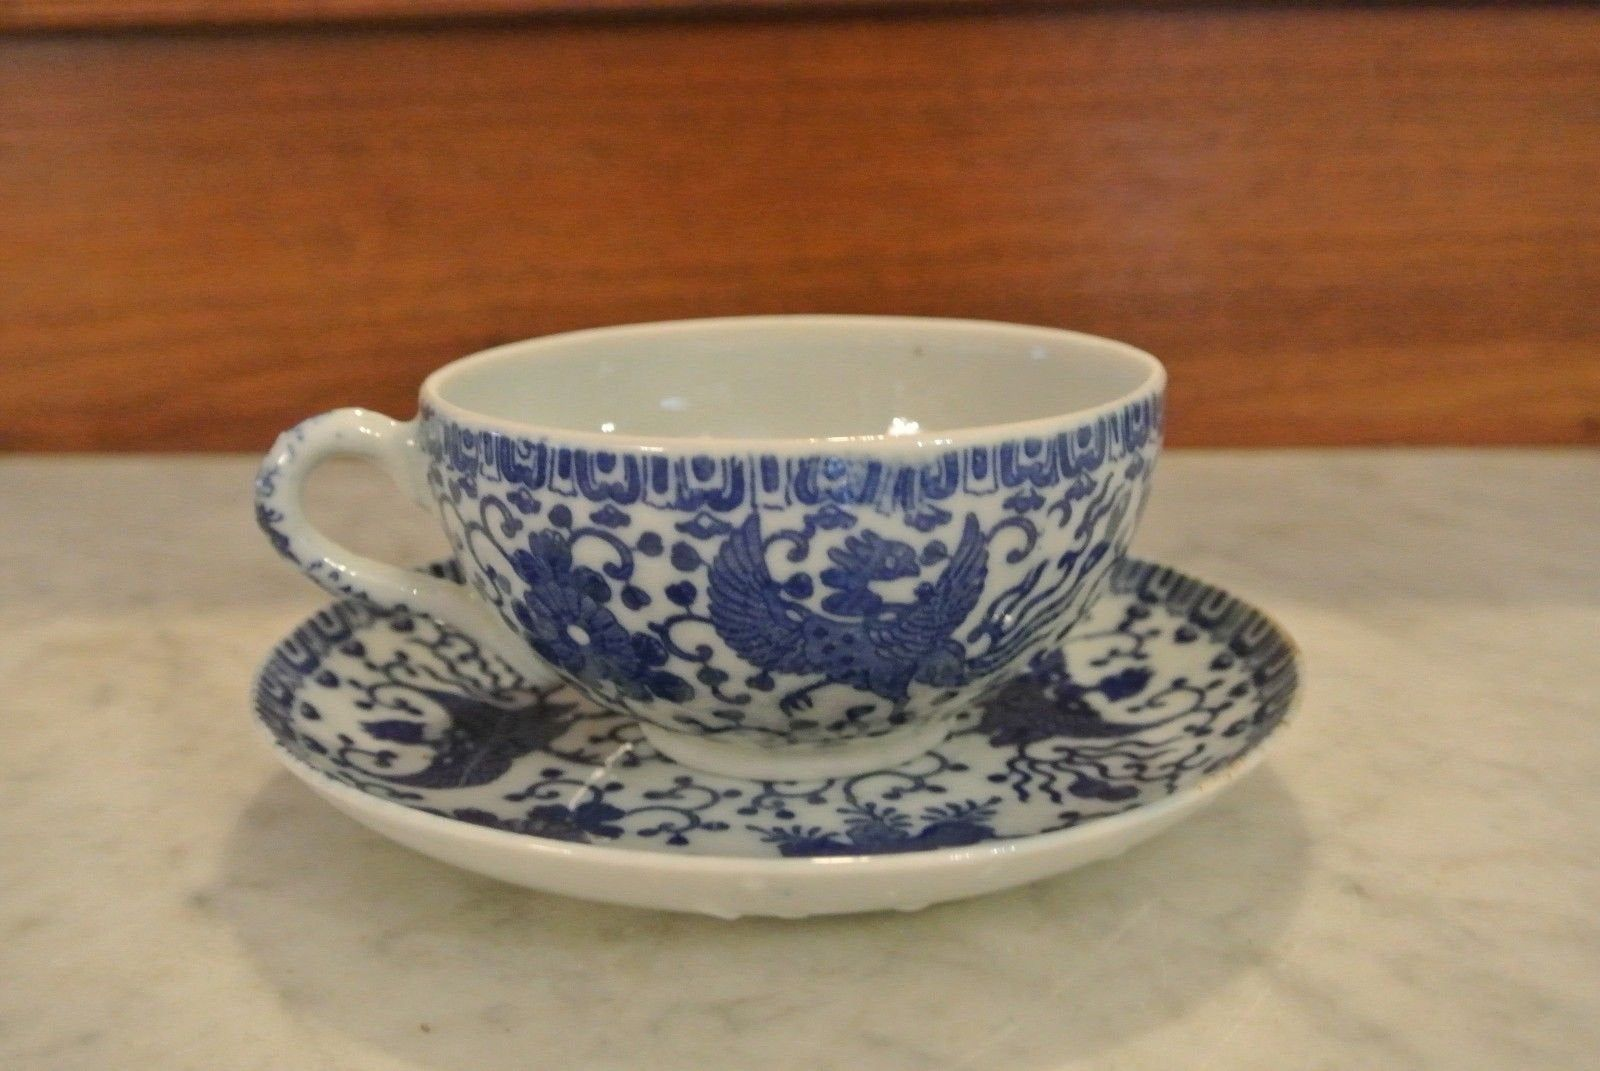 Vintage Japanese Phoenixware teacup and saucer